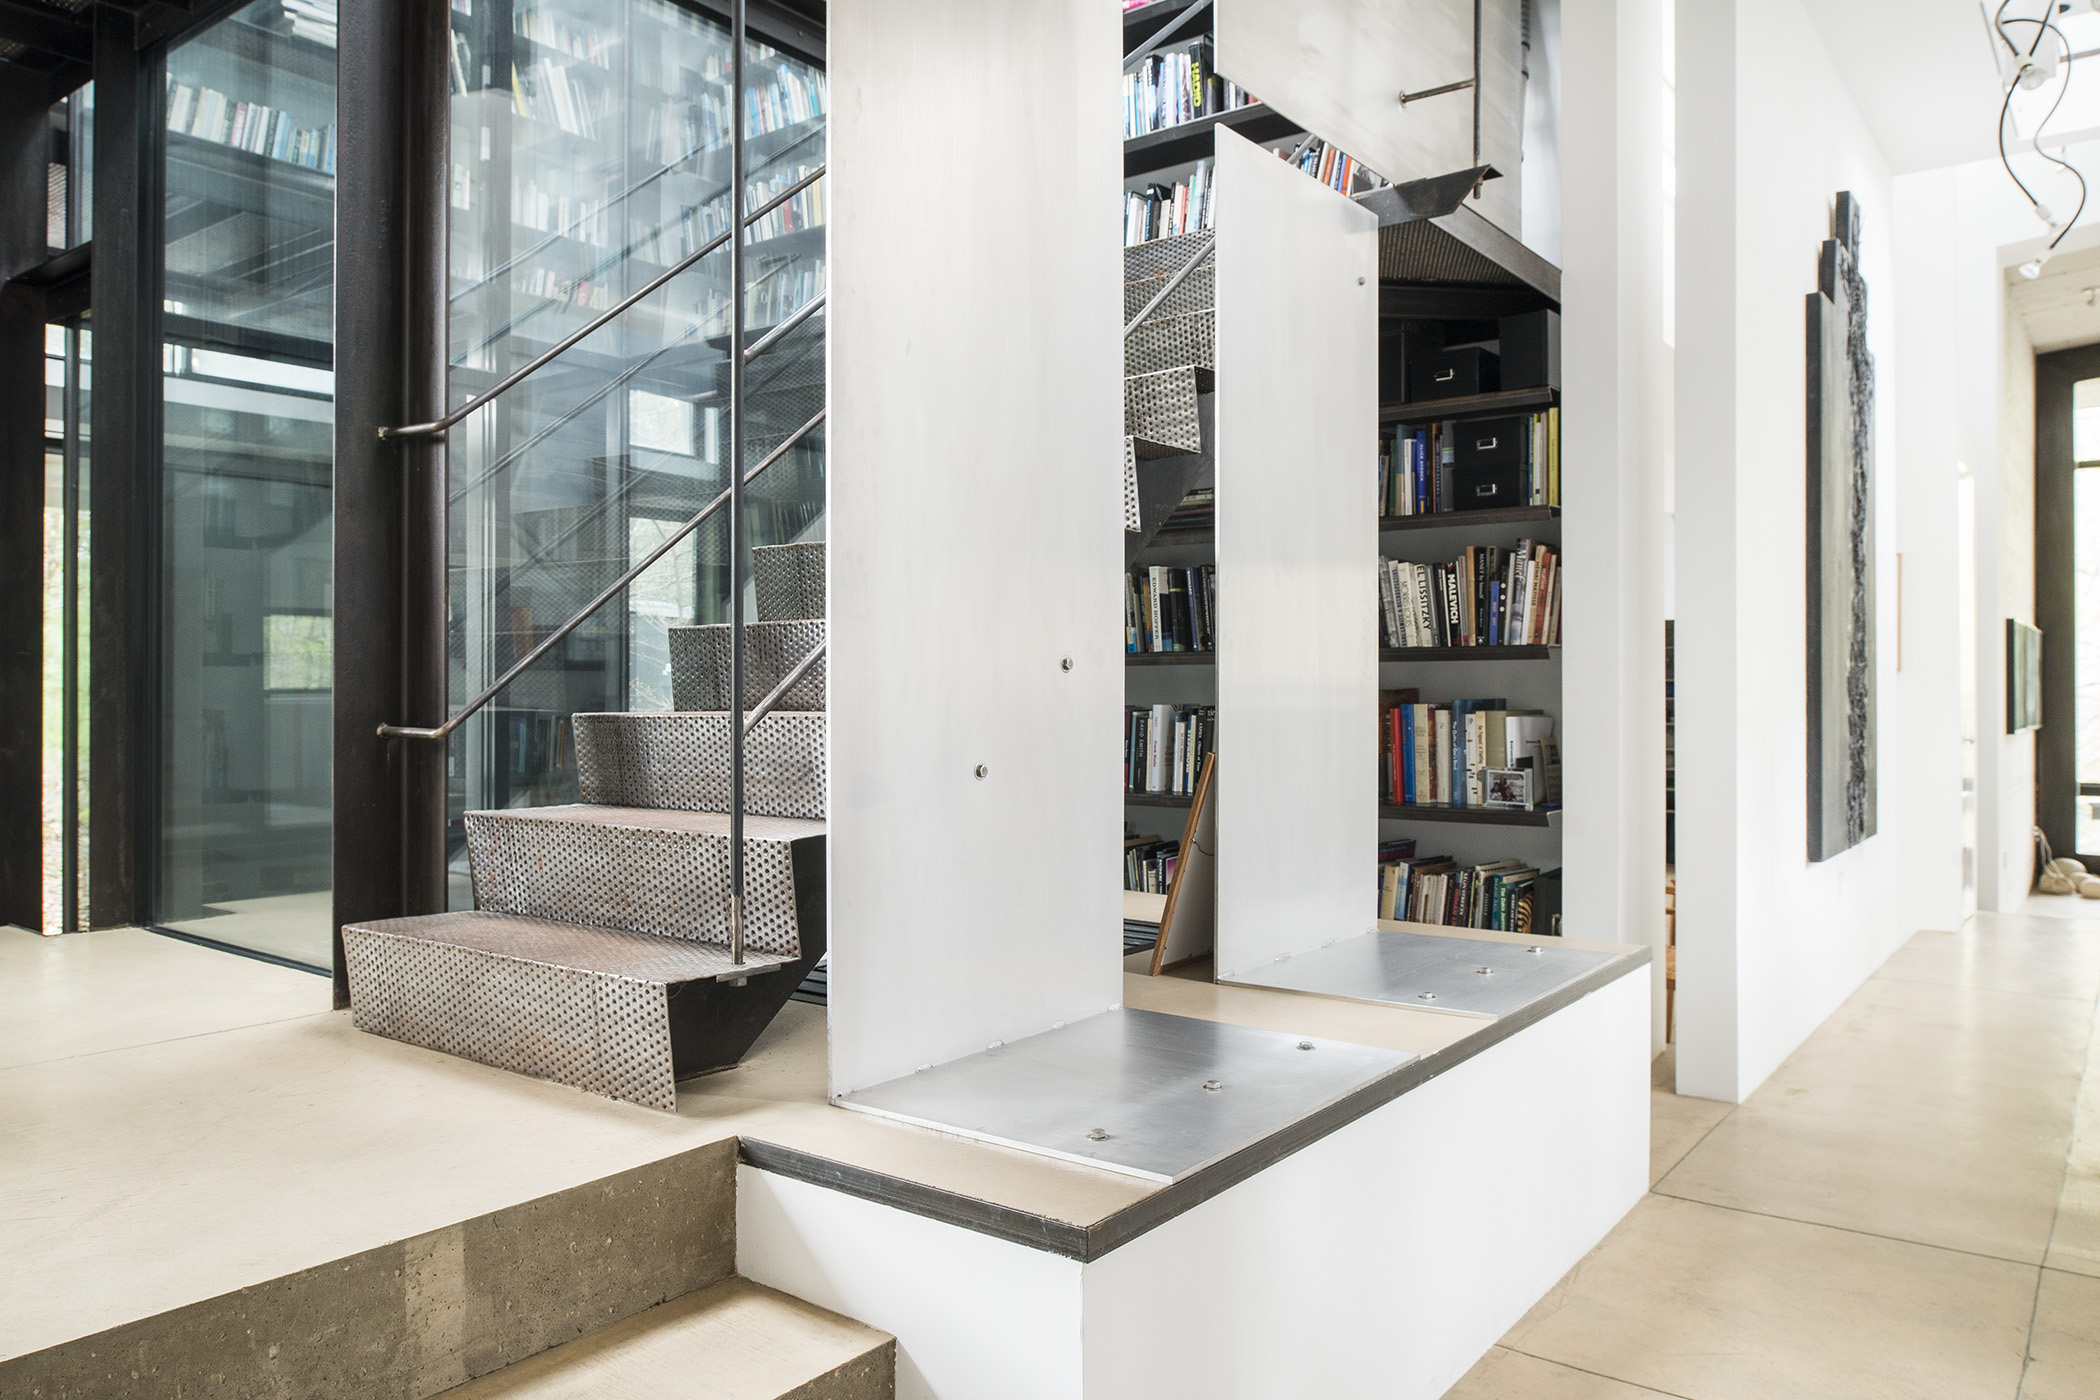 award-winning concrete home in maine asks $2m - curbed